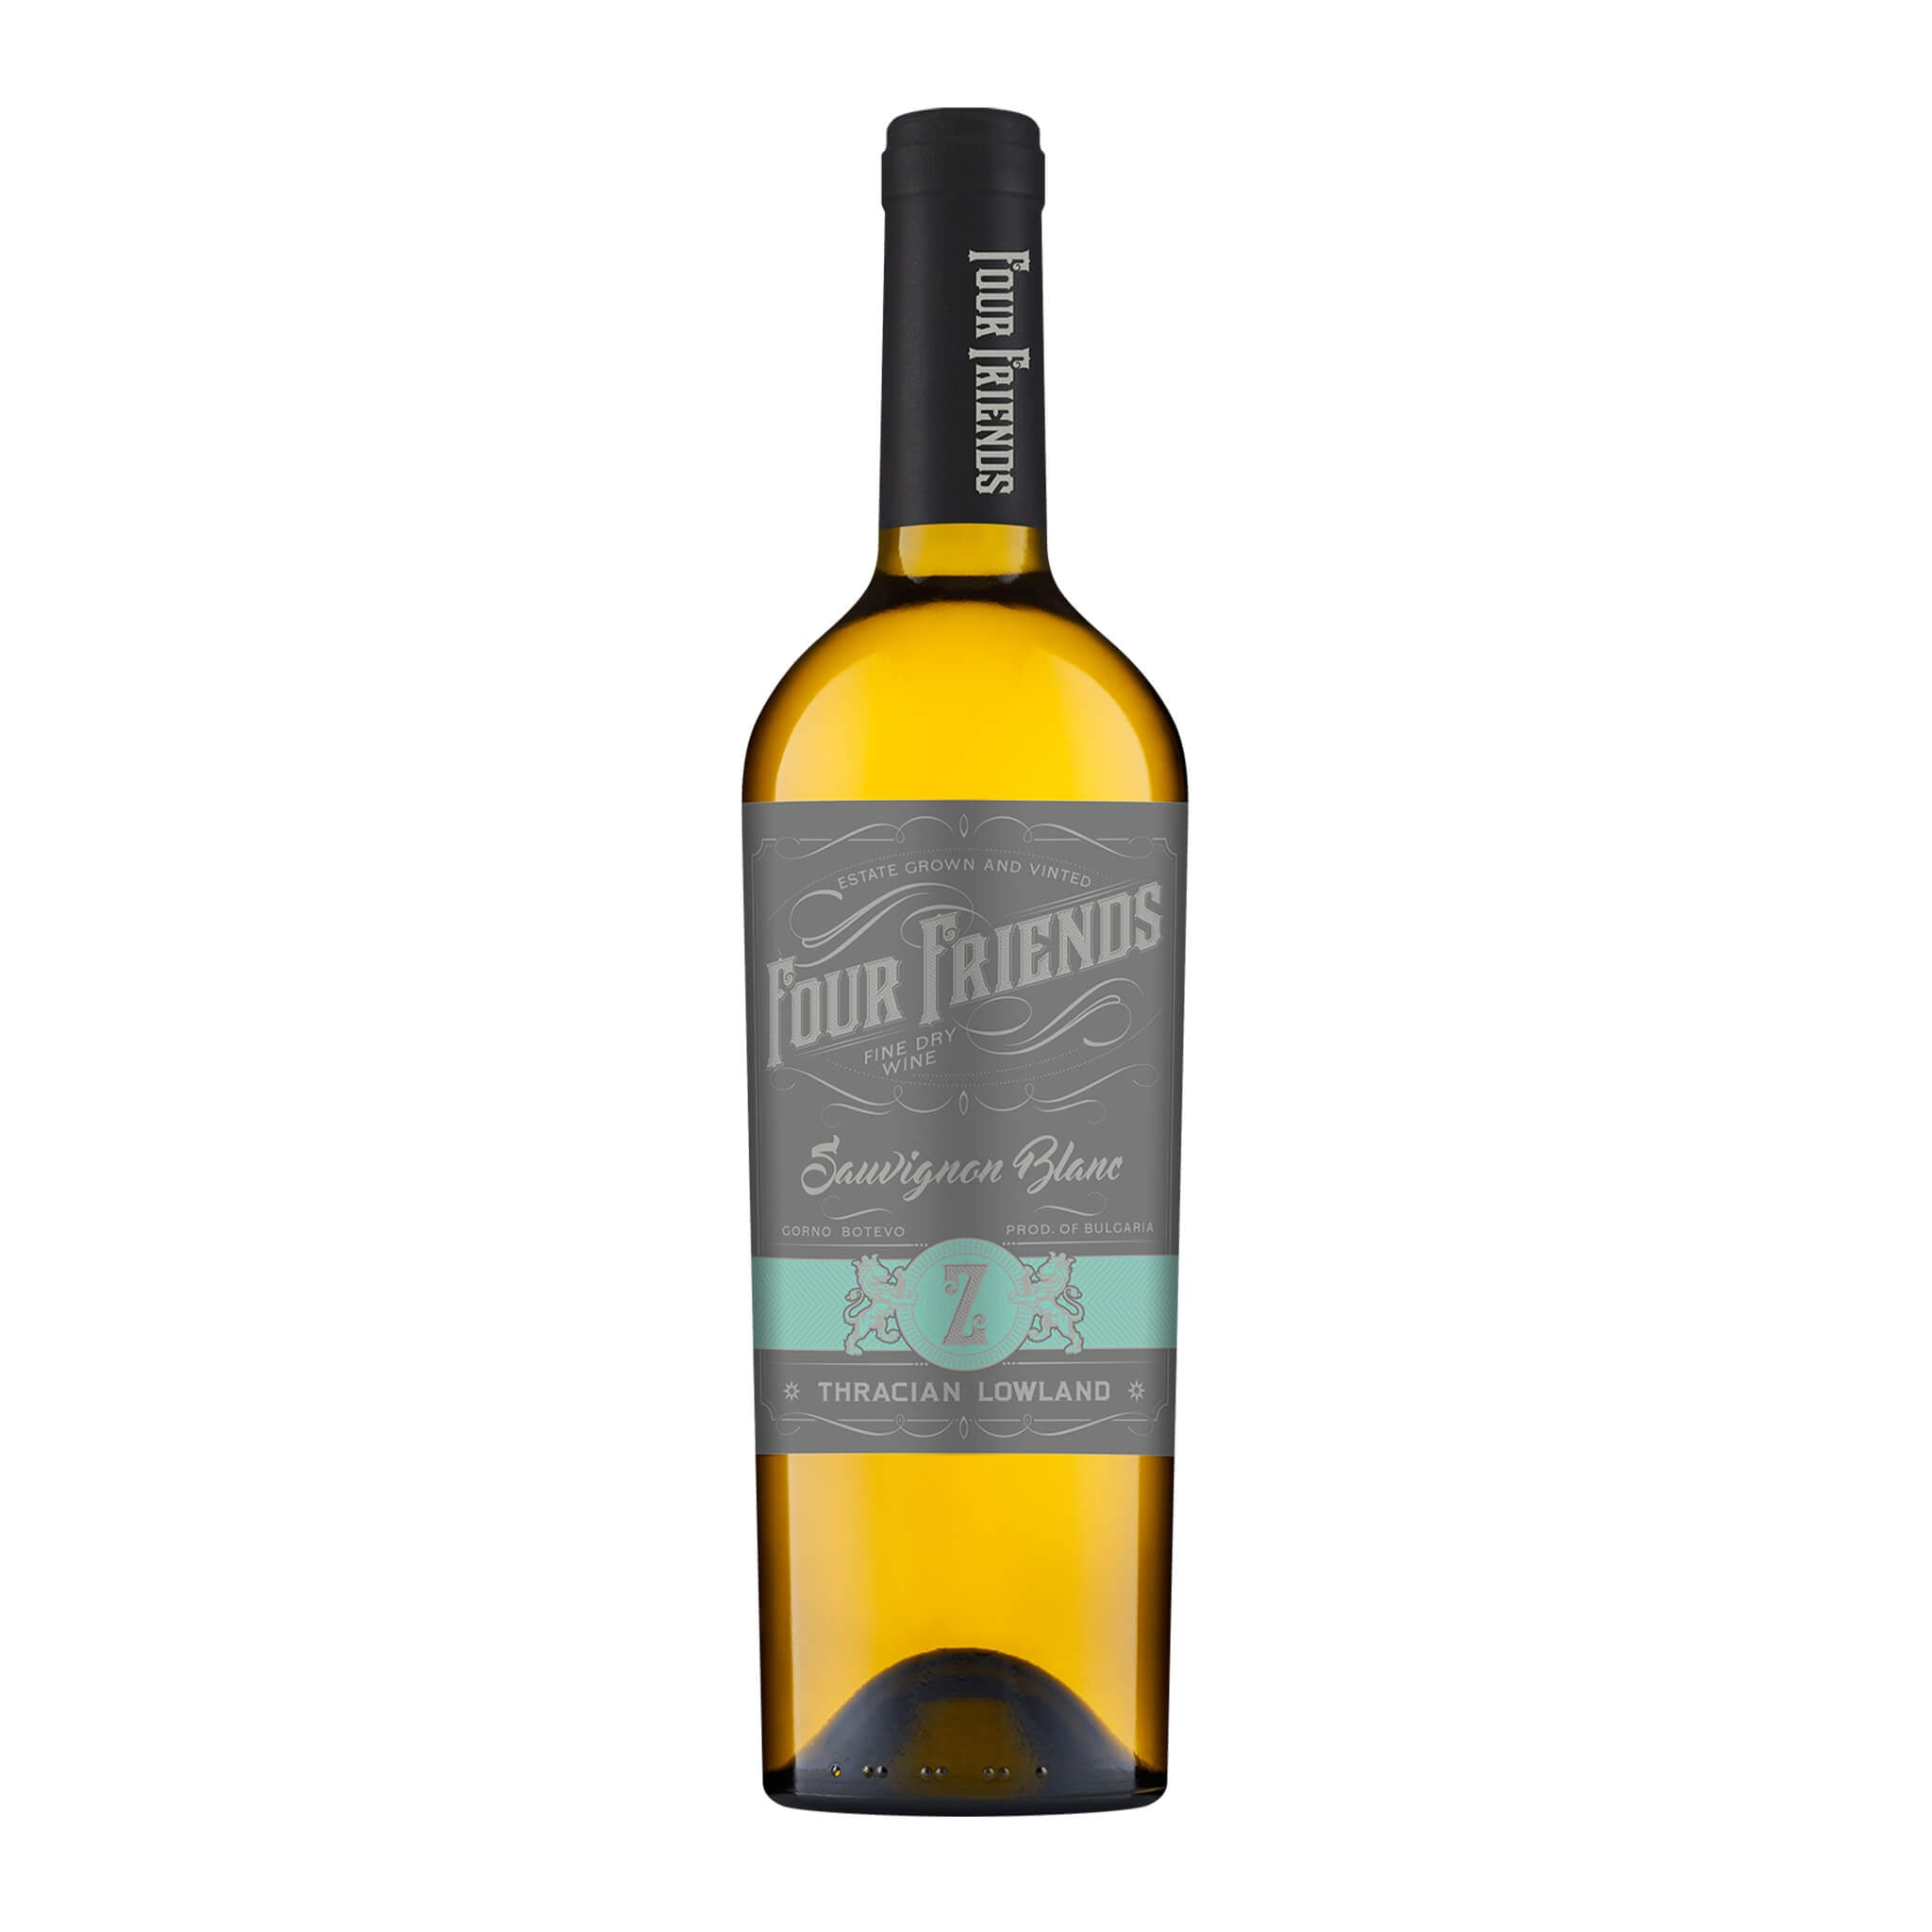 Four Friends Sauvignon Blanc 2019